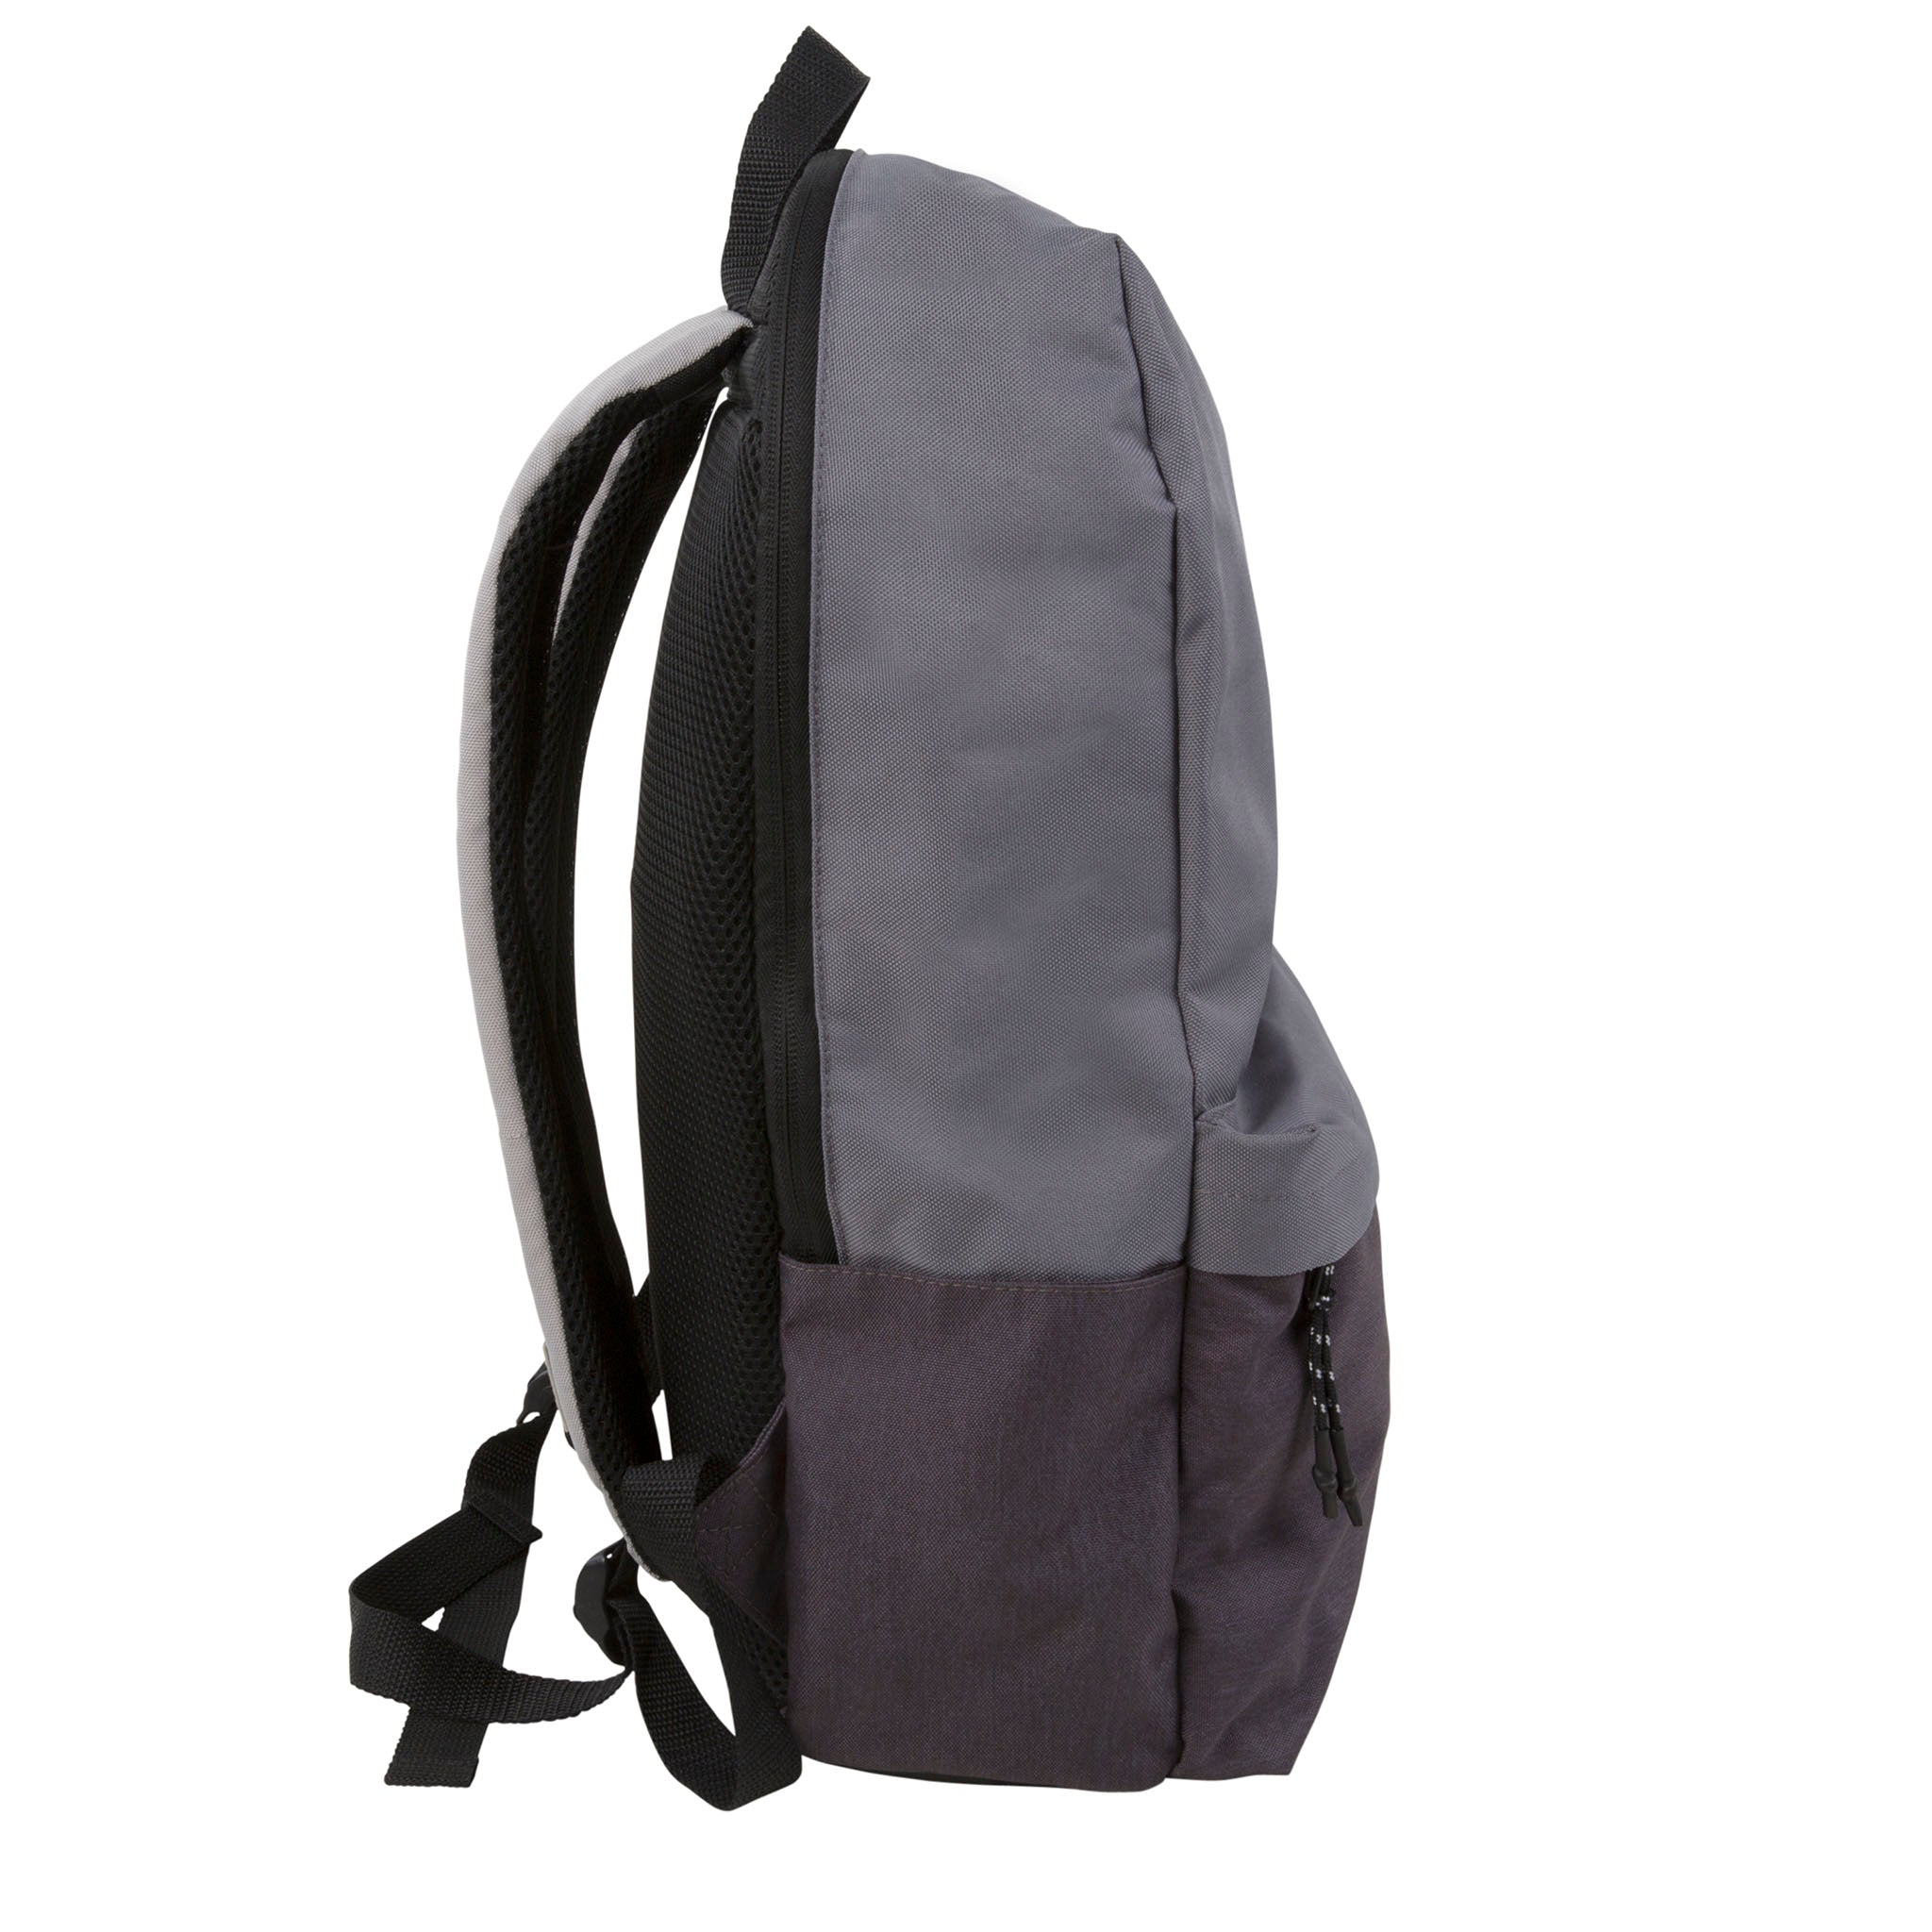 58355e54a3 Laptop Bags, Wet/Dry Backpack, Laptop Backpacks, Premium Bags - HEX